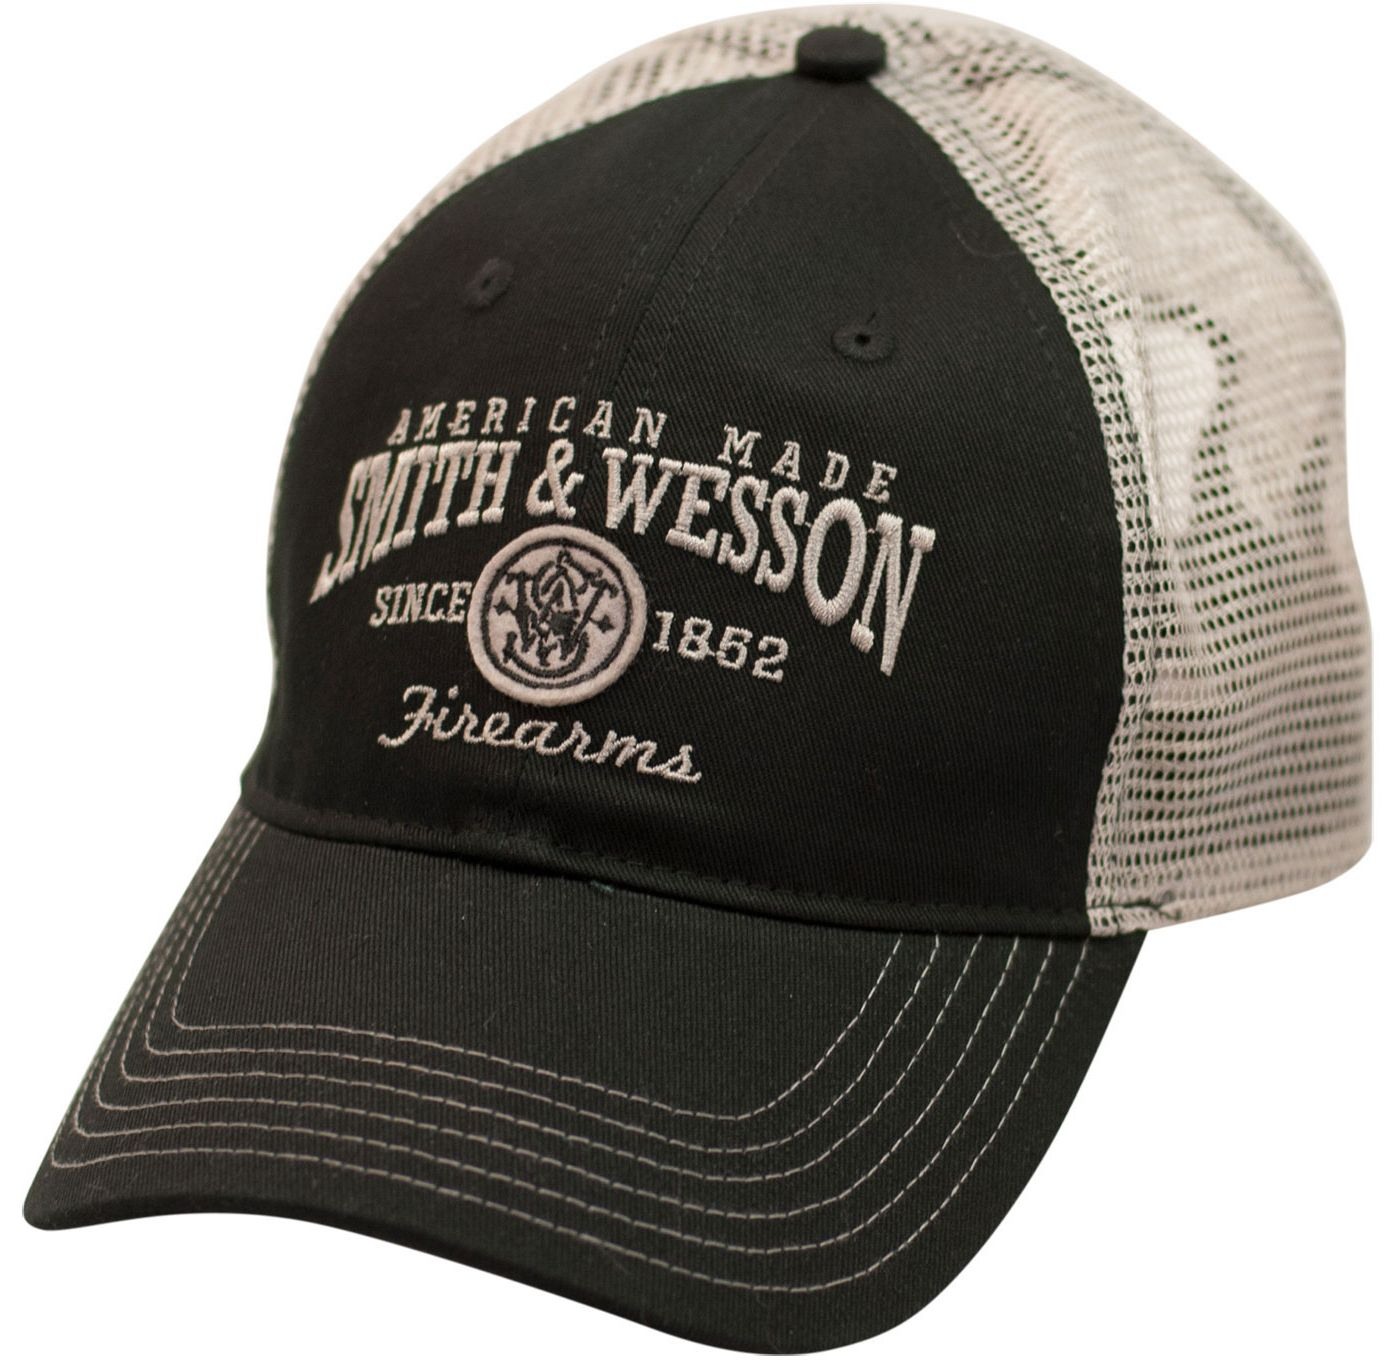 Smith & Wesson Men's American Made Firearms Trucker Hat